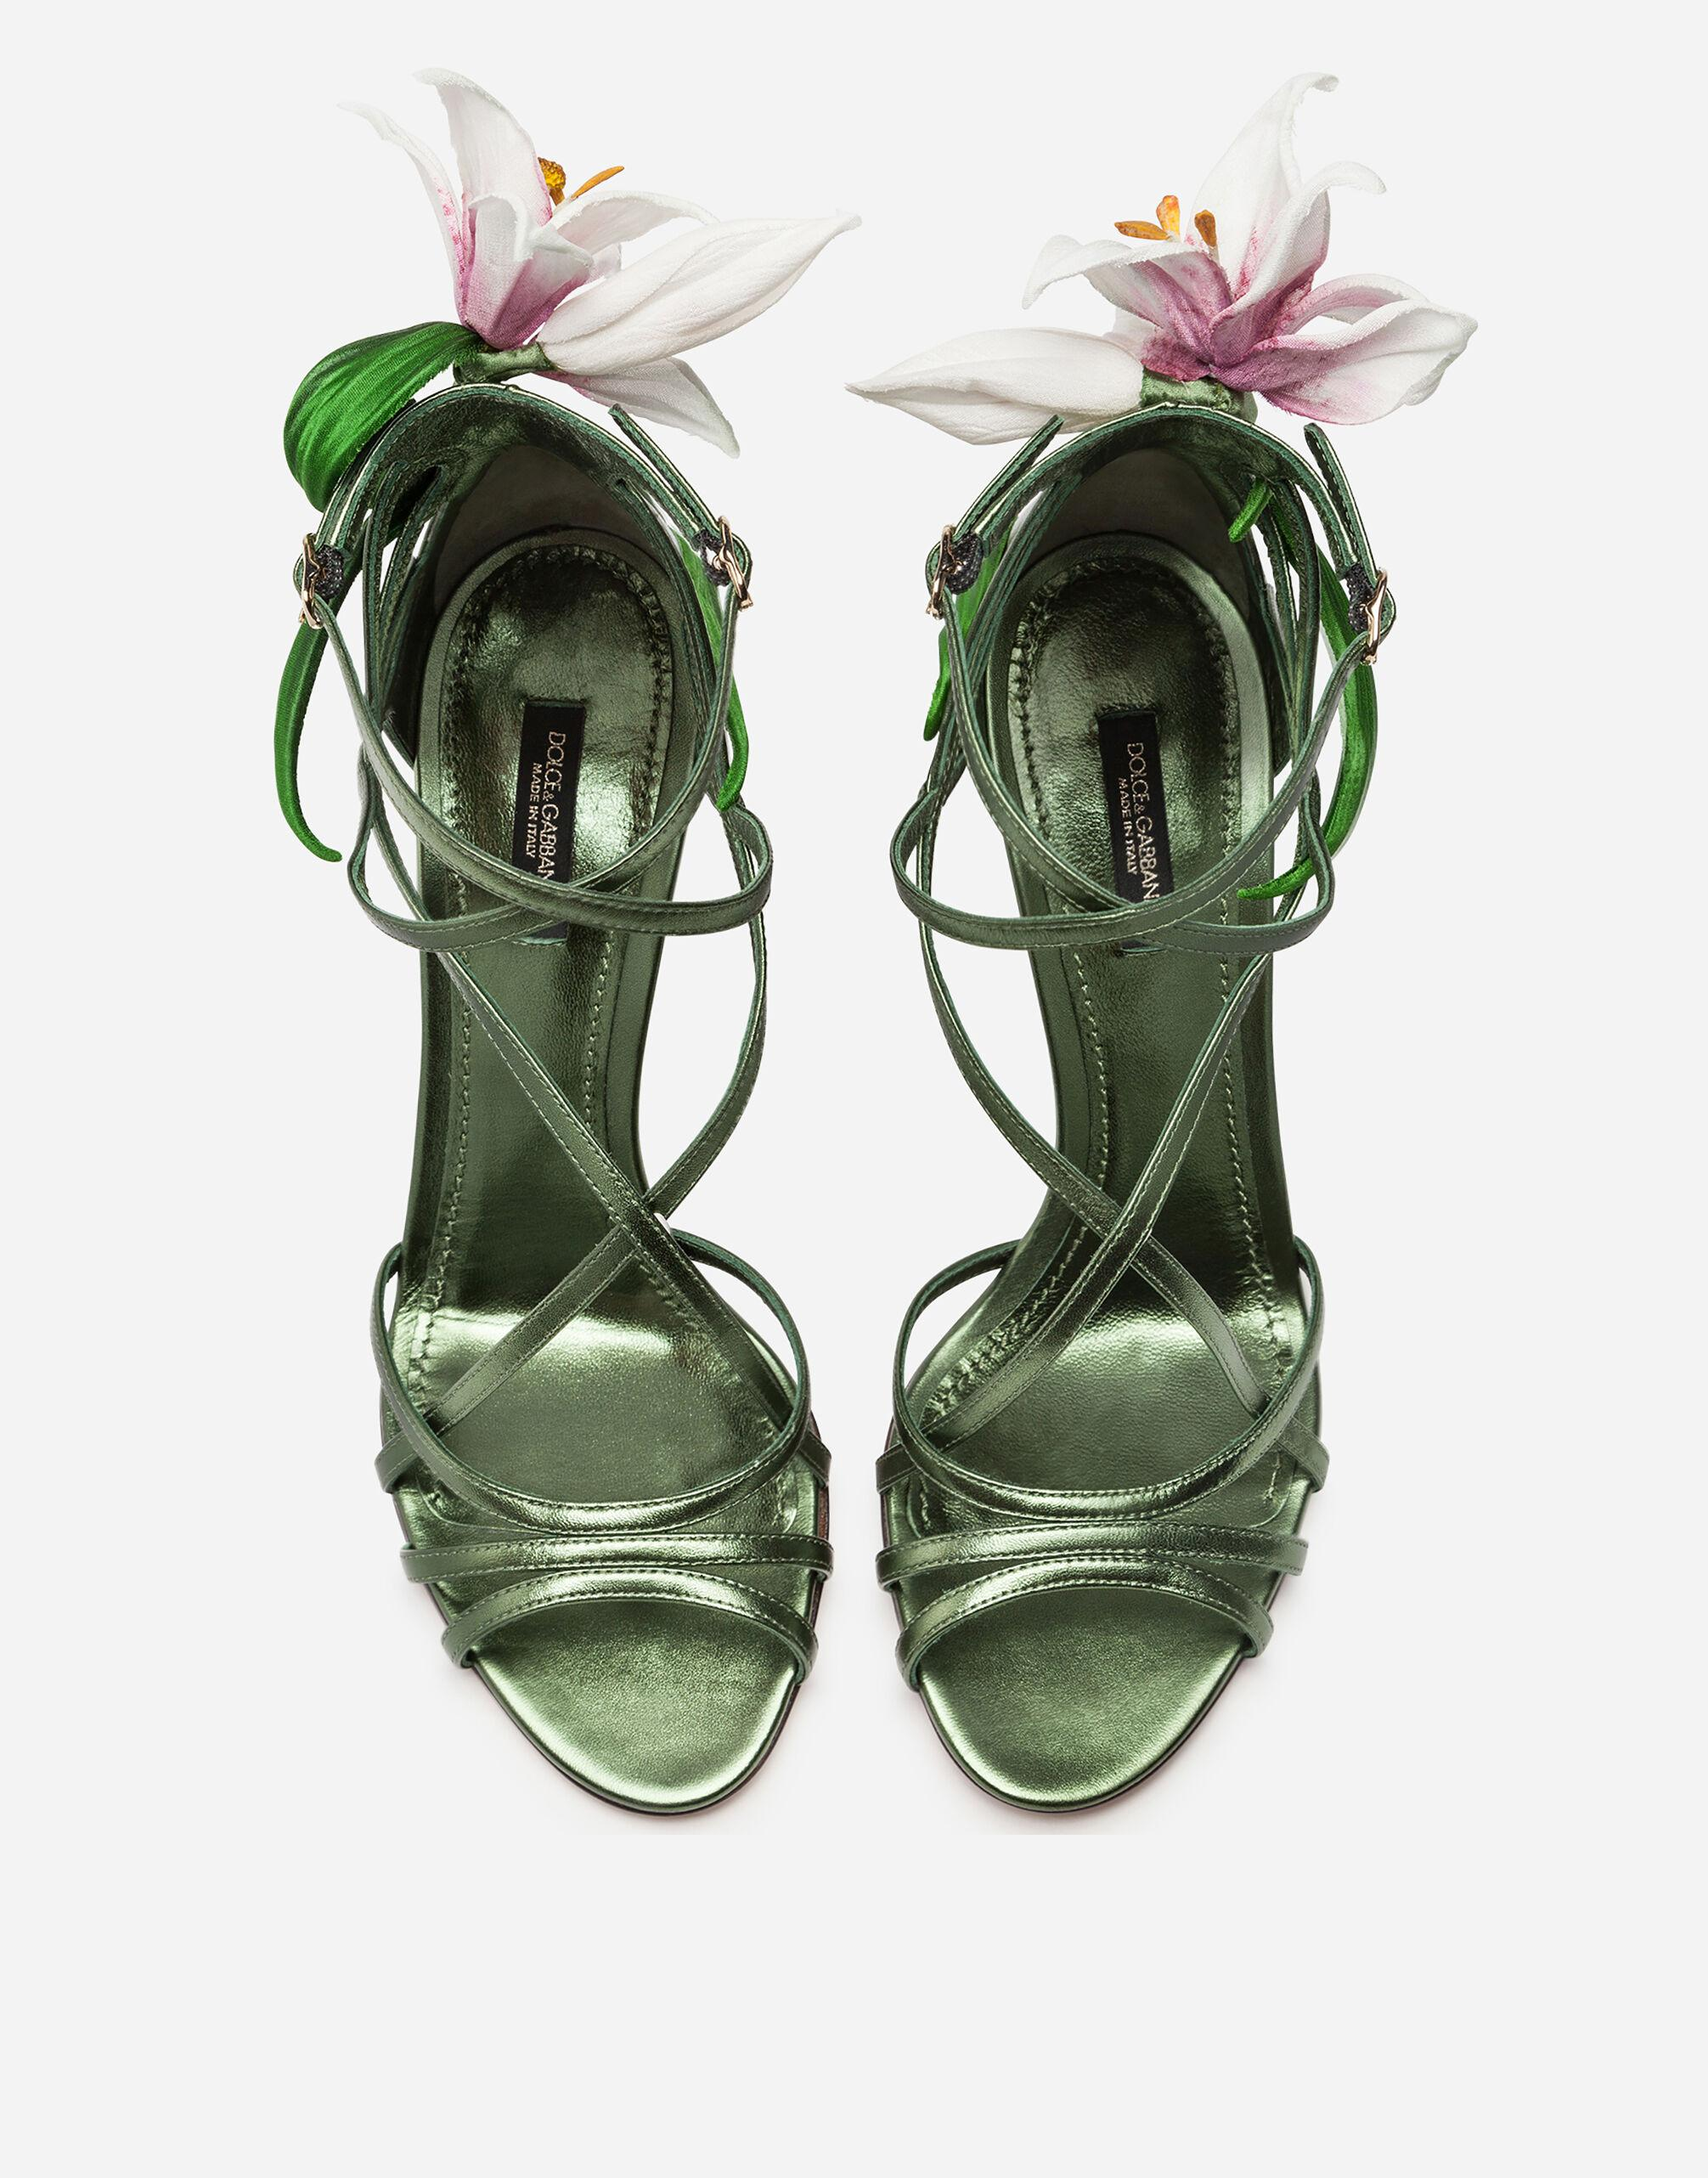 Mordore nappa sandals with lily embroidery 3